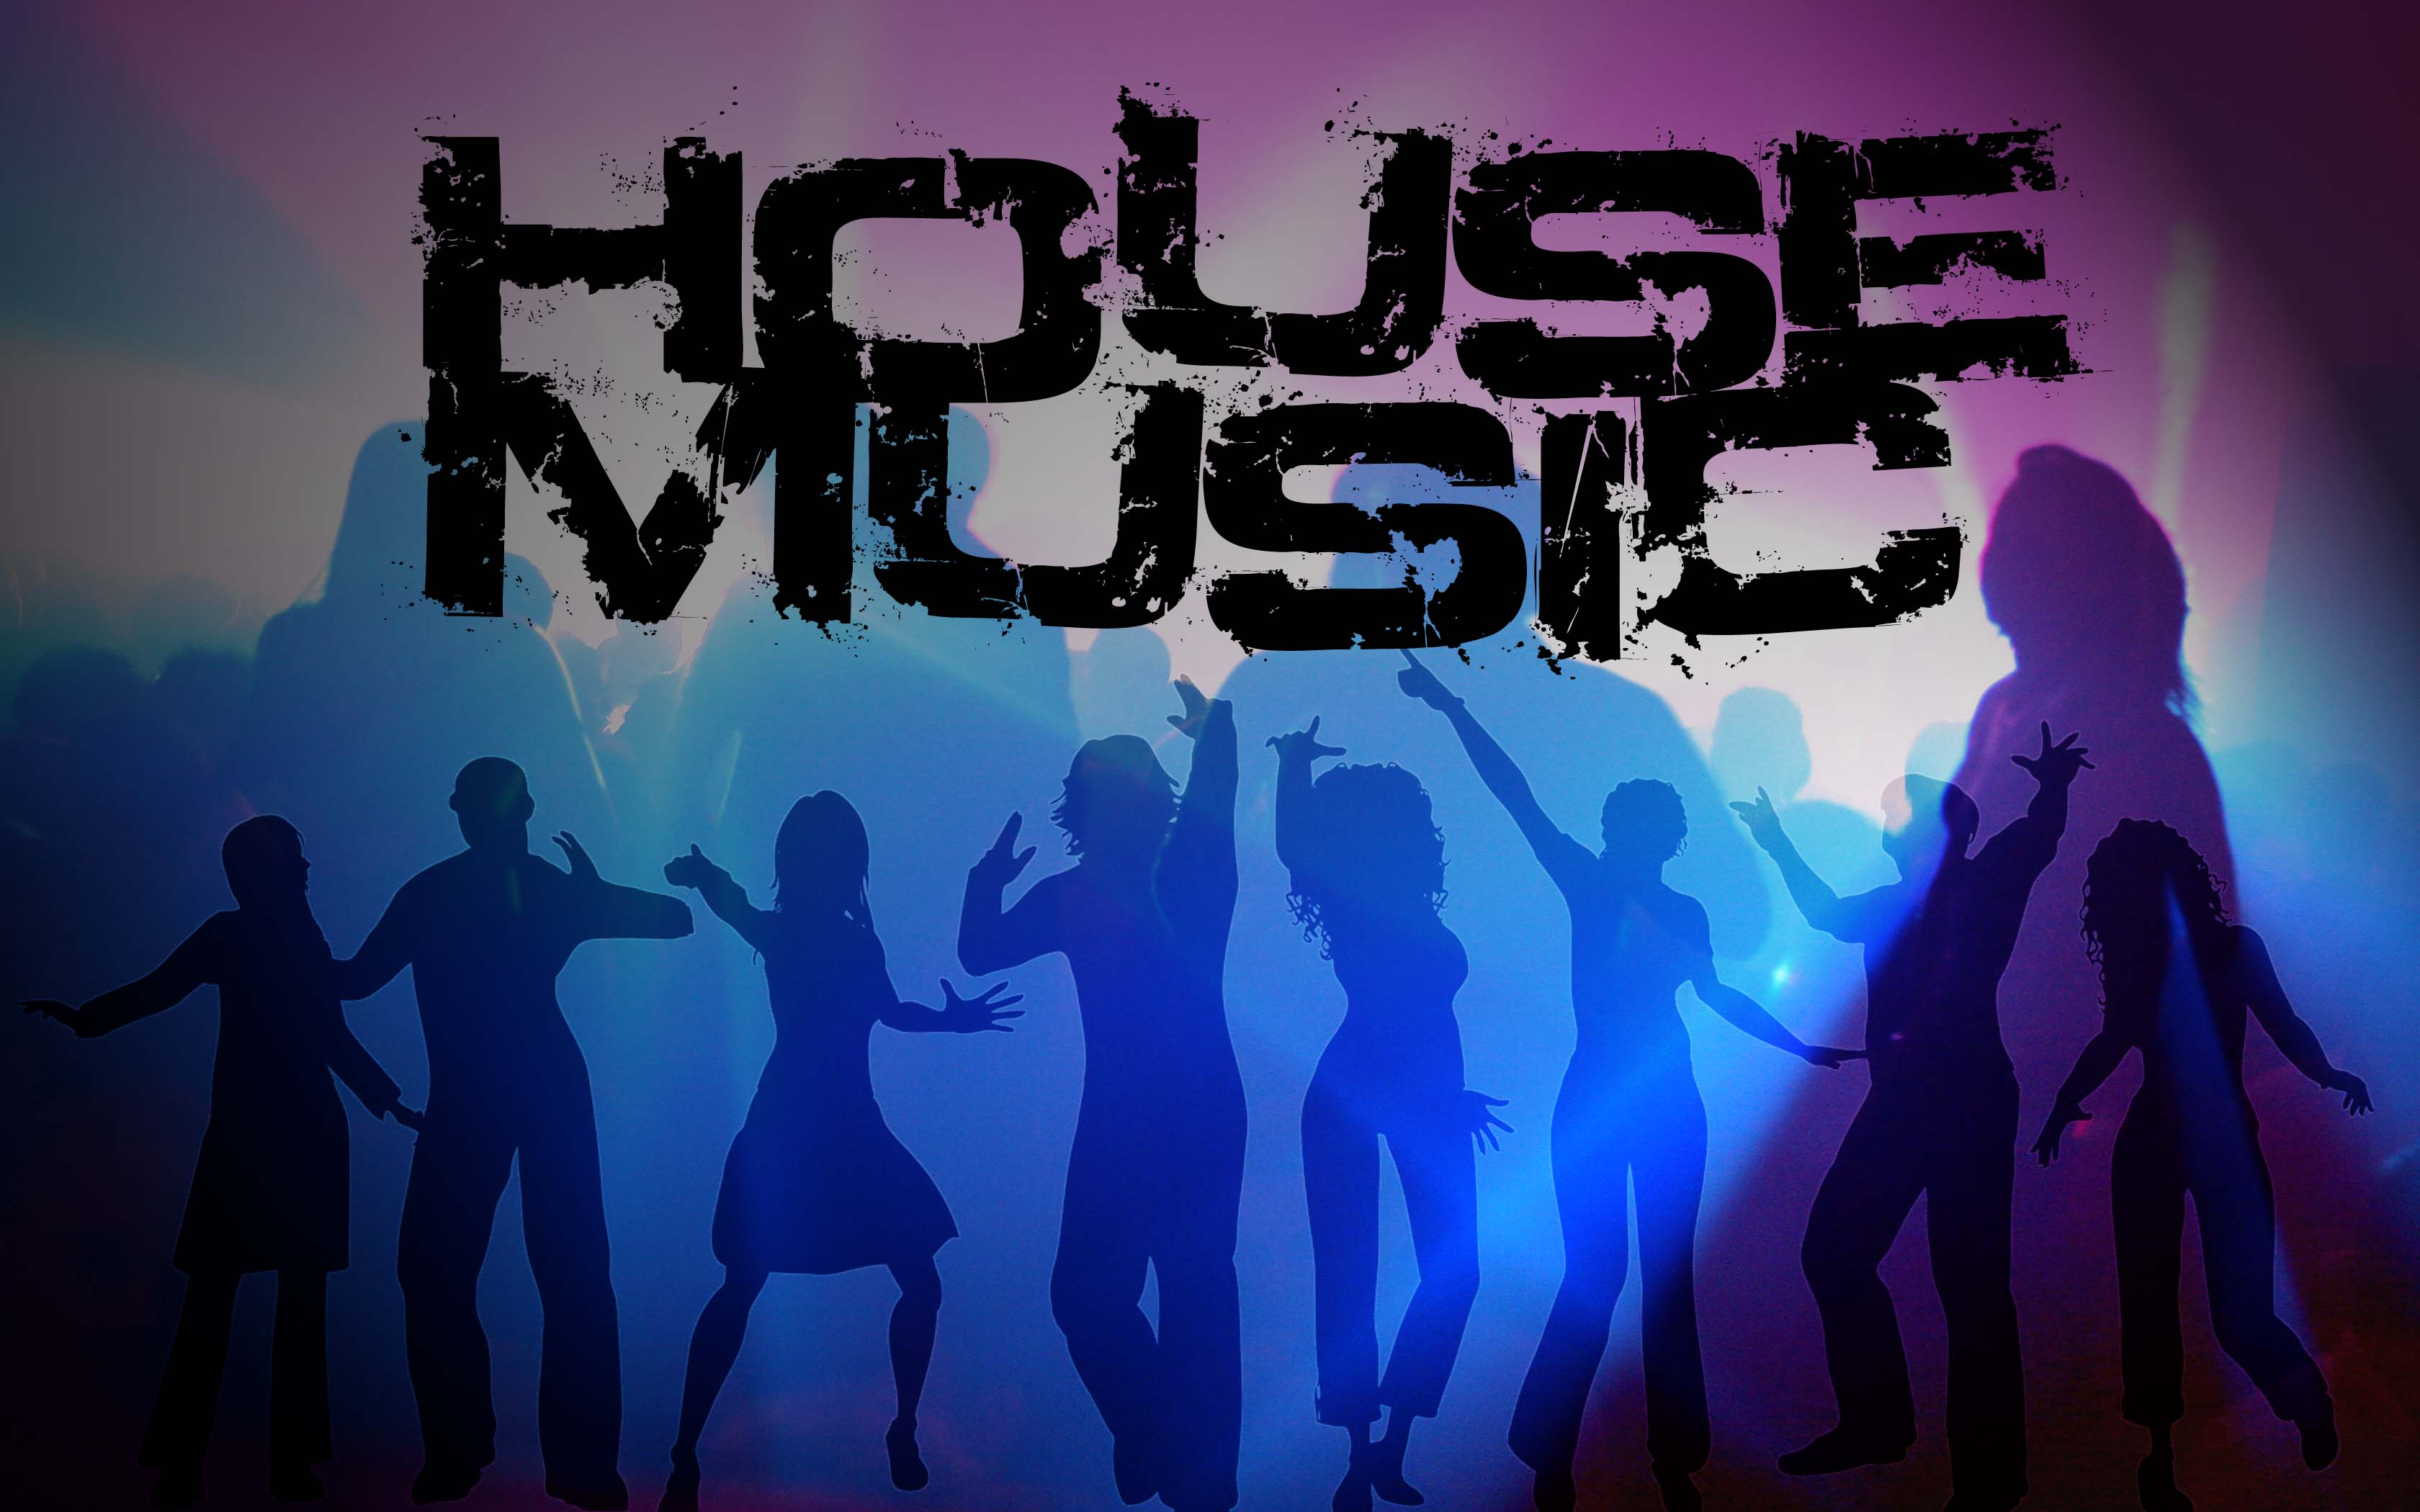 W la house music e quant bella la vita dovatu for House house house music